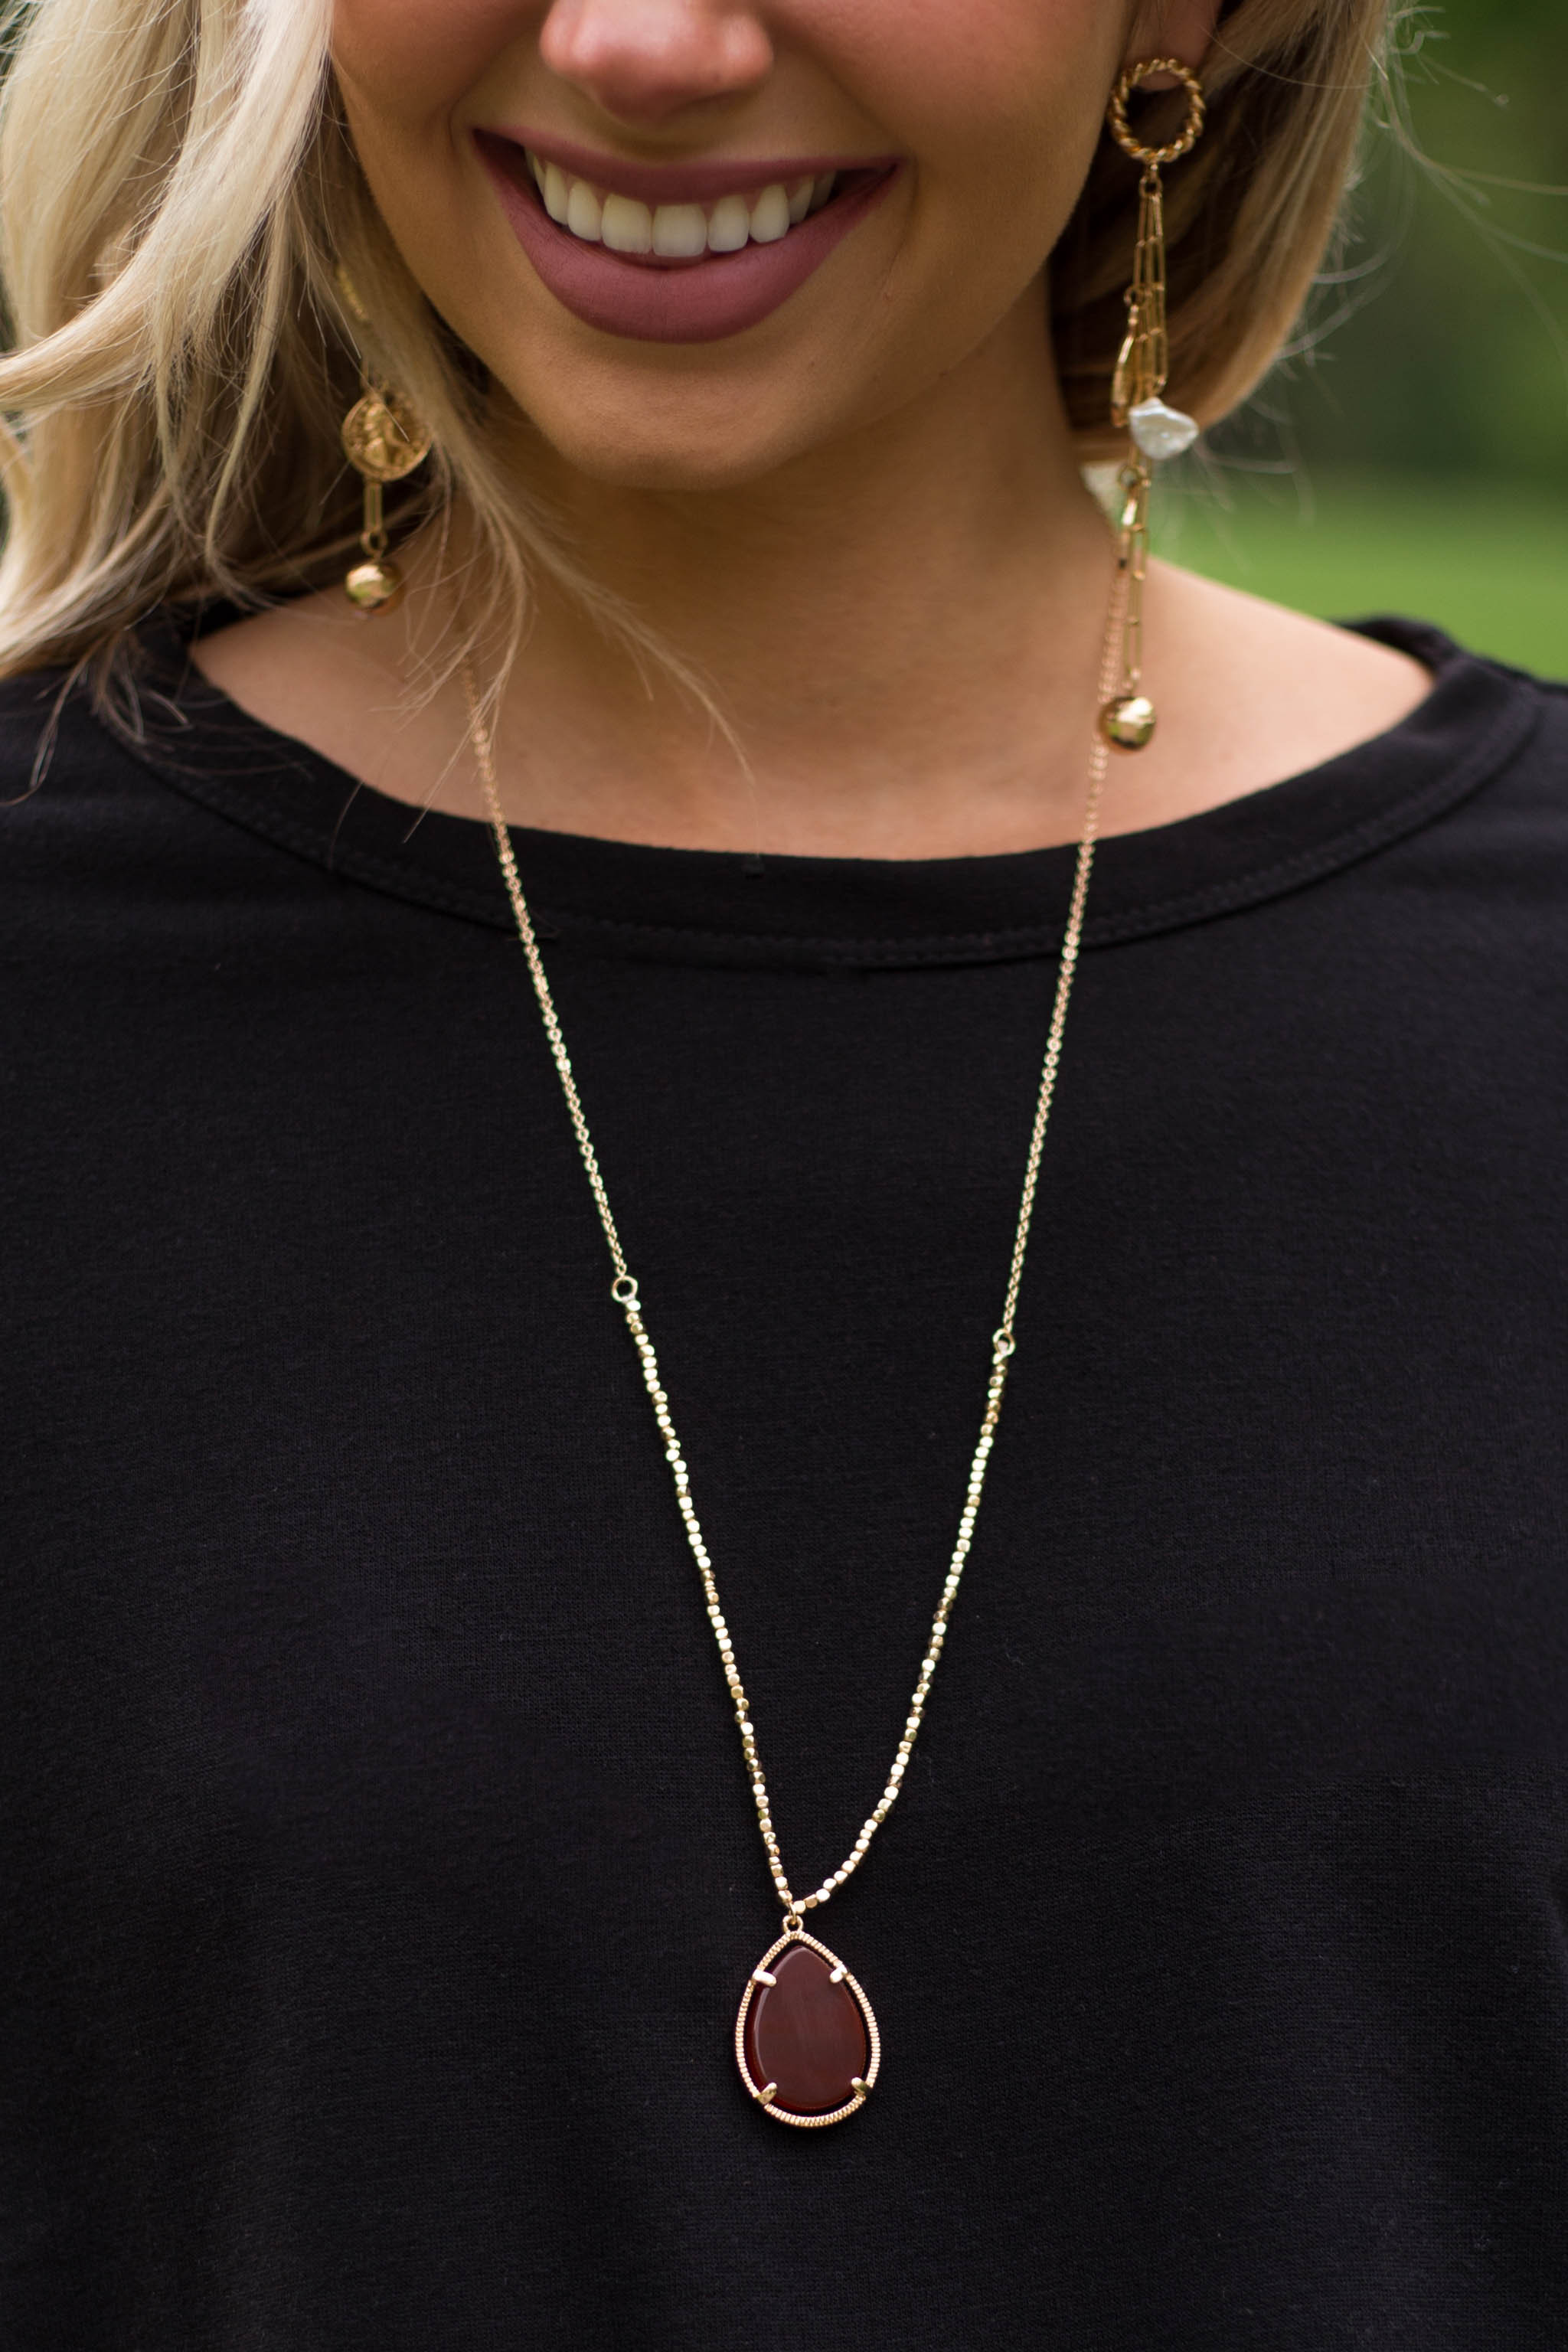 Gold Necklace with Beaded Details and Cherry Stone Pendant